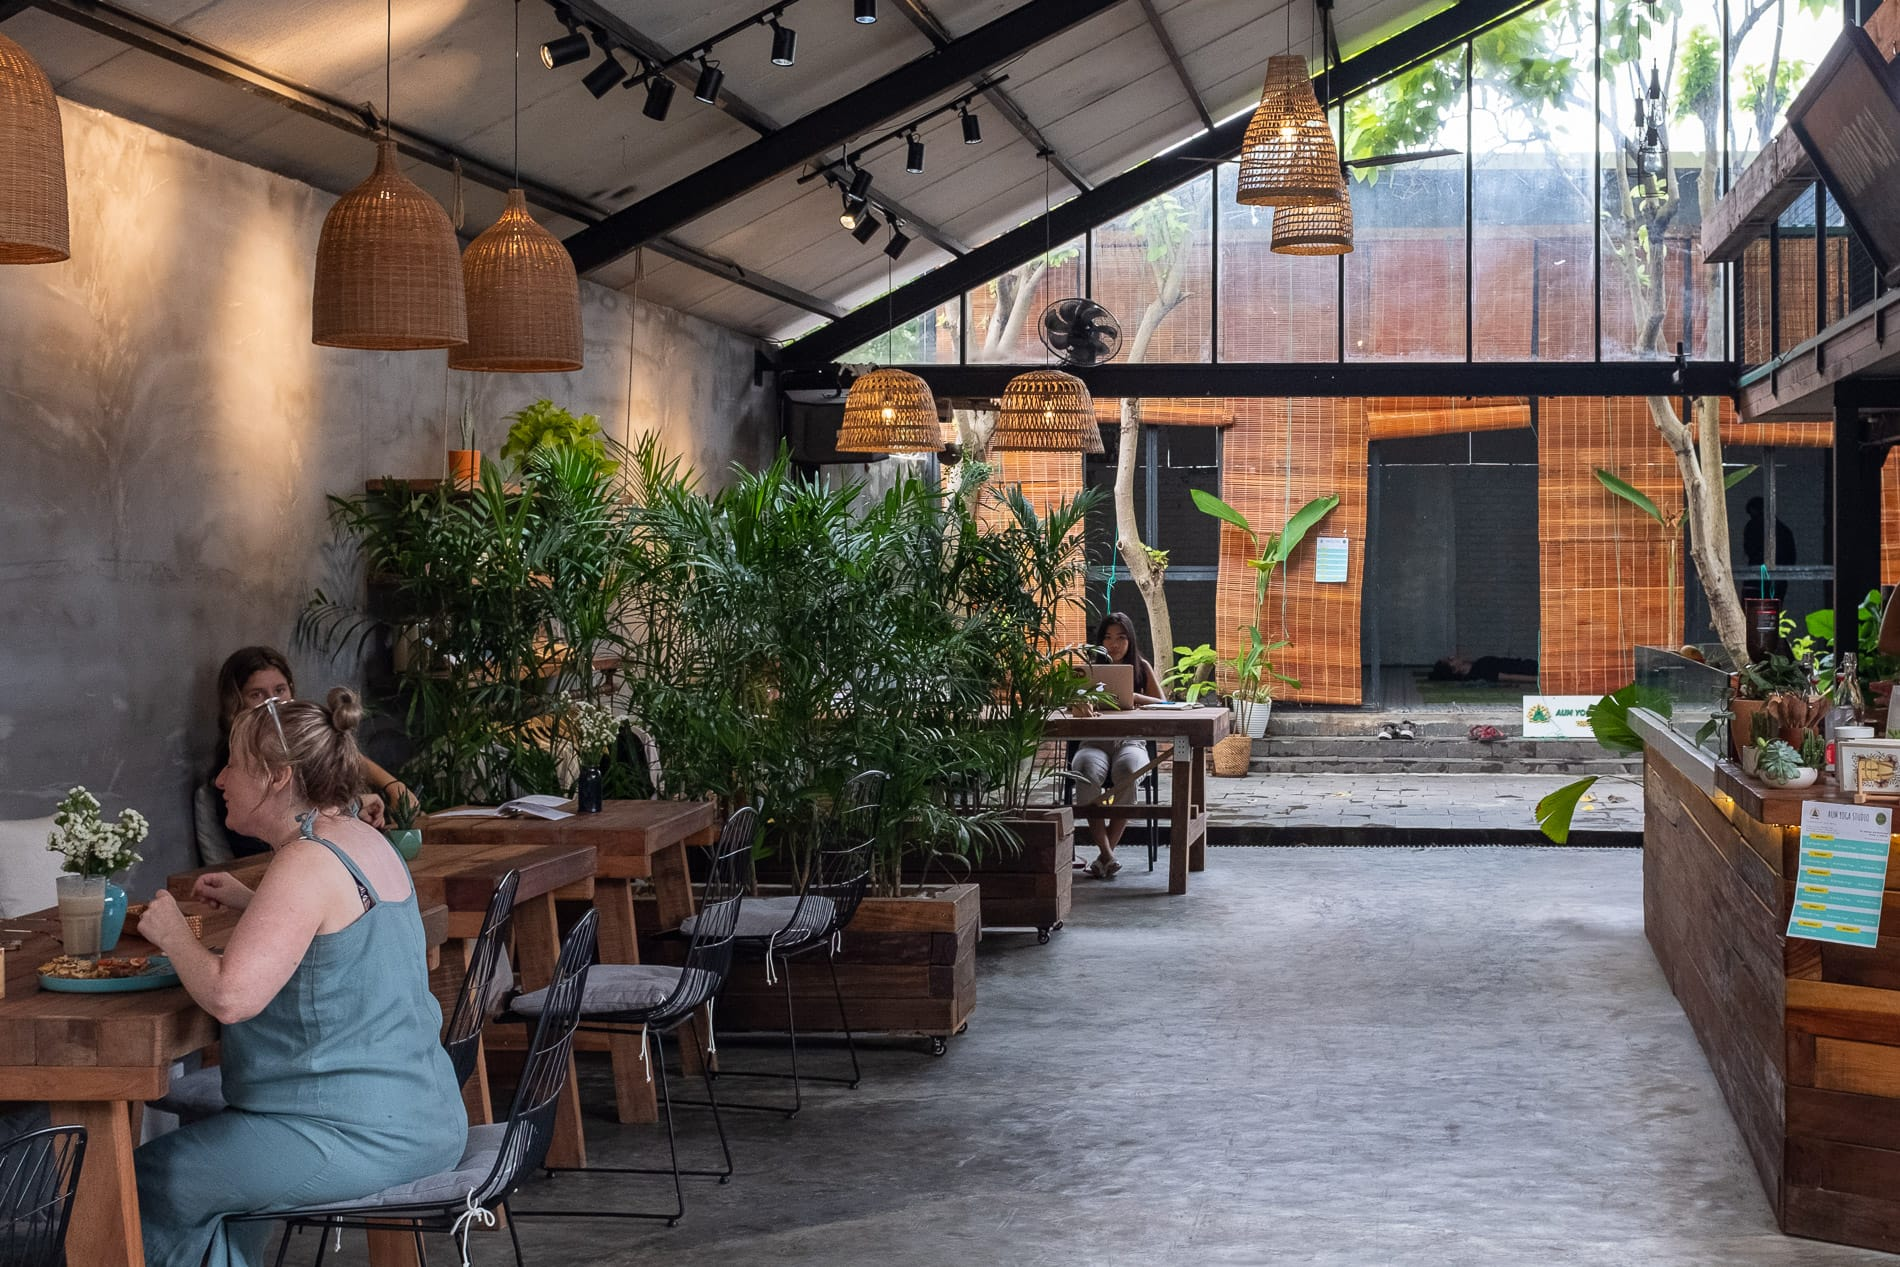 outdoor seating area at Nourish Eatery Hoi An